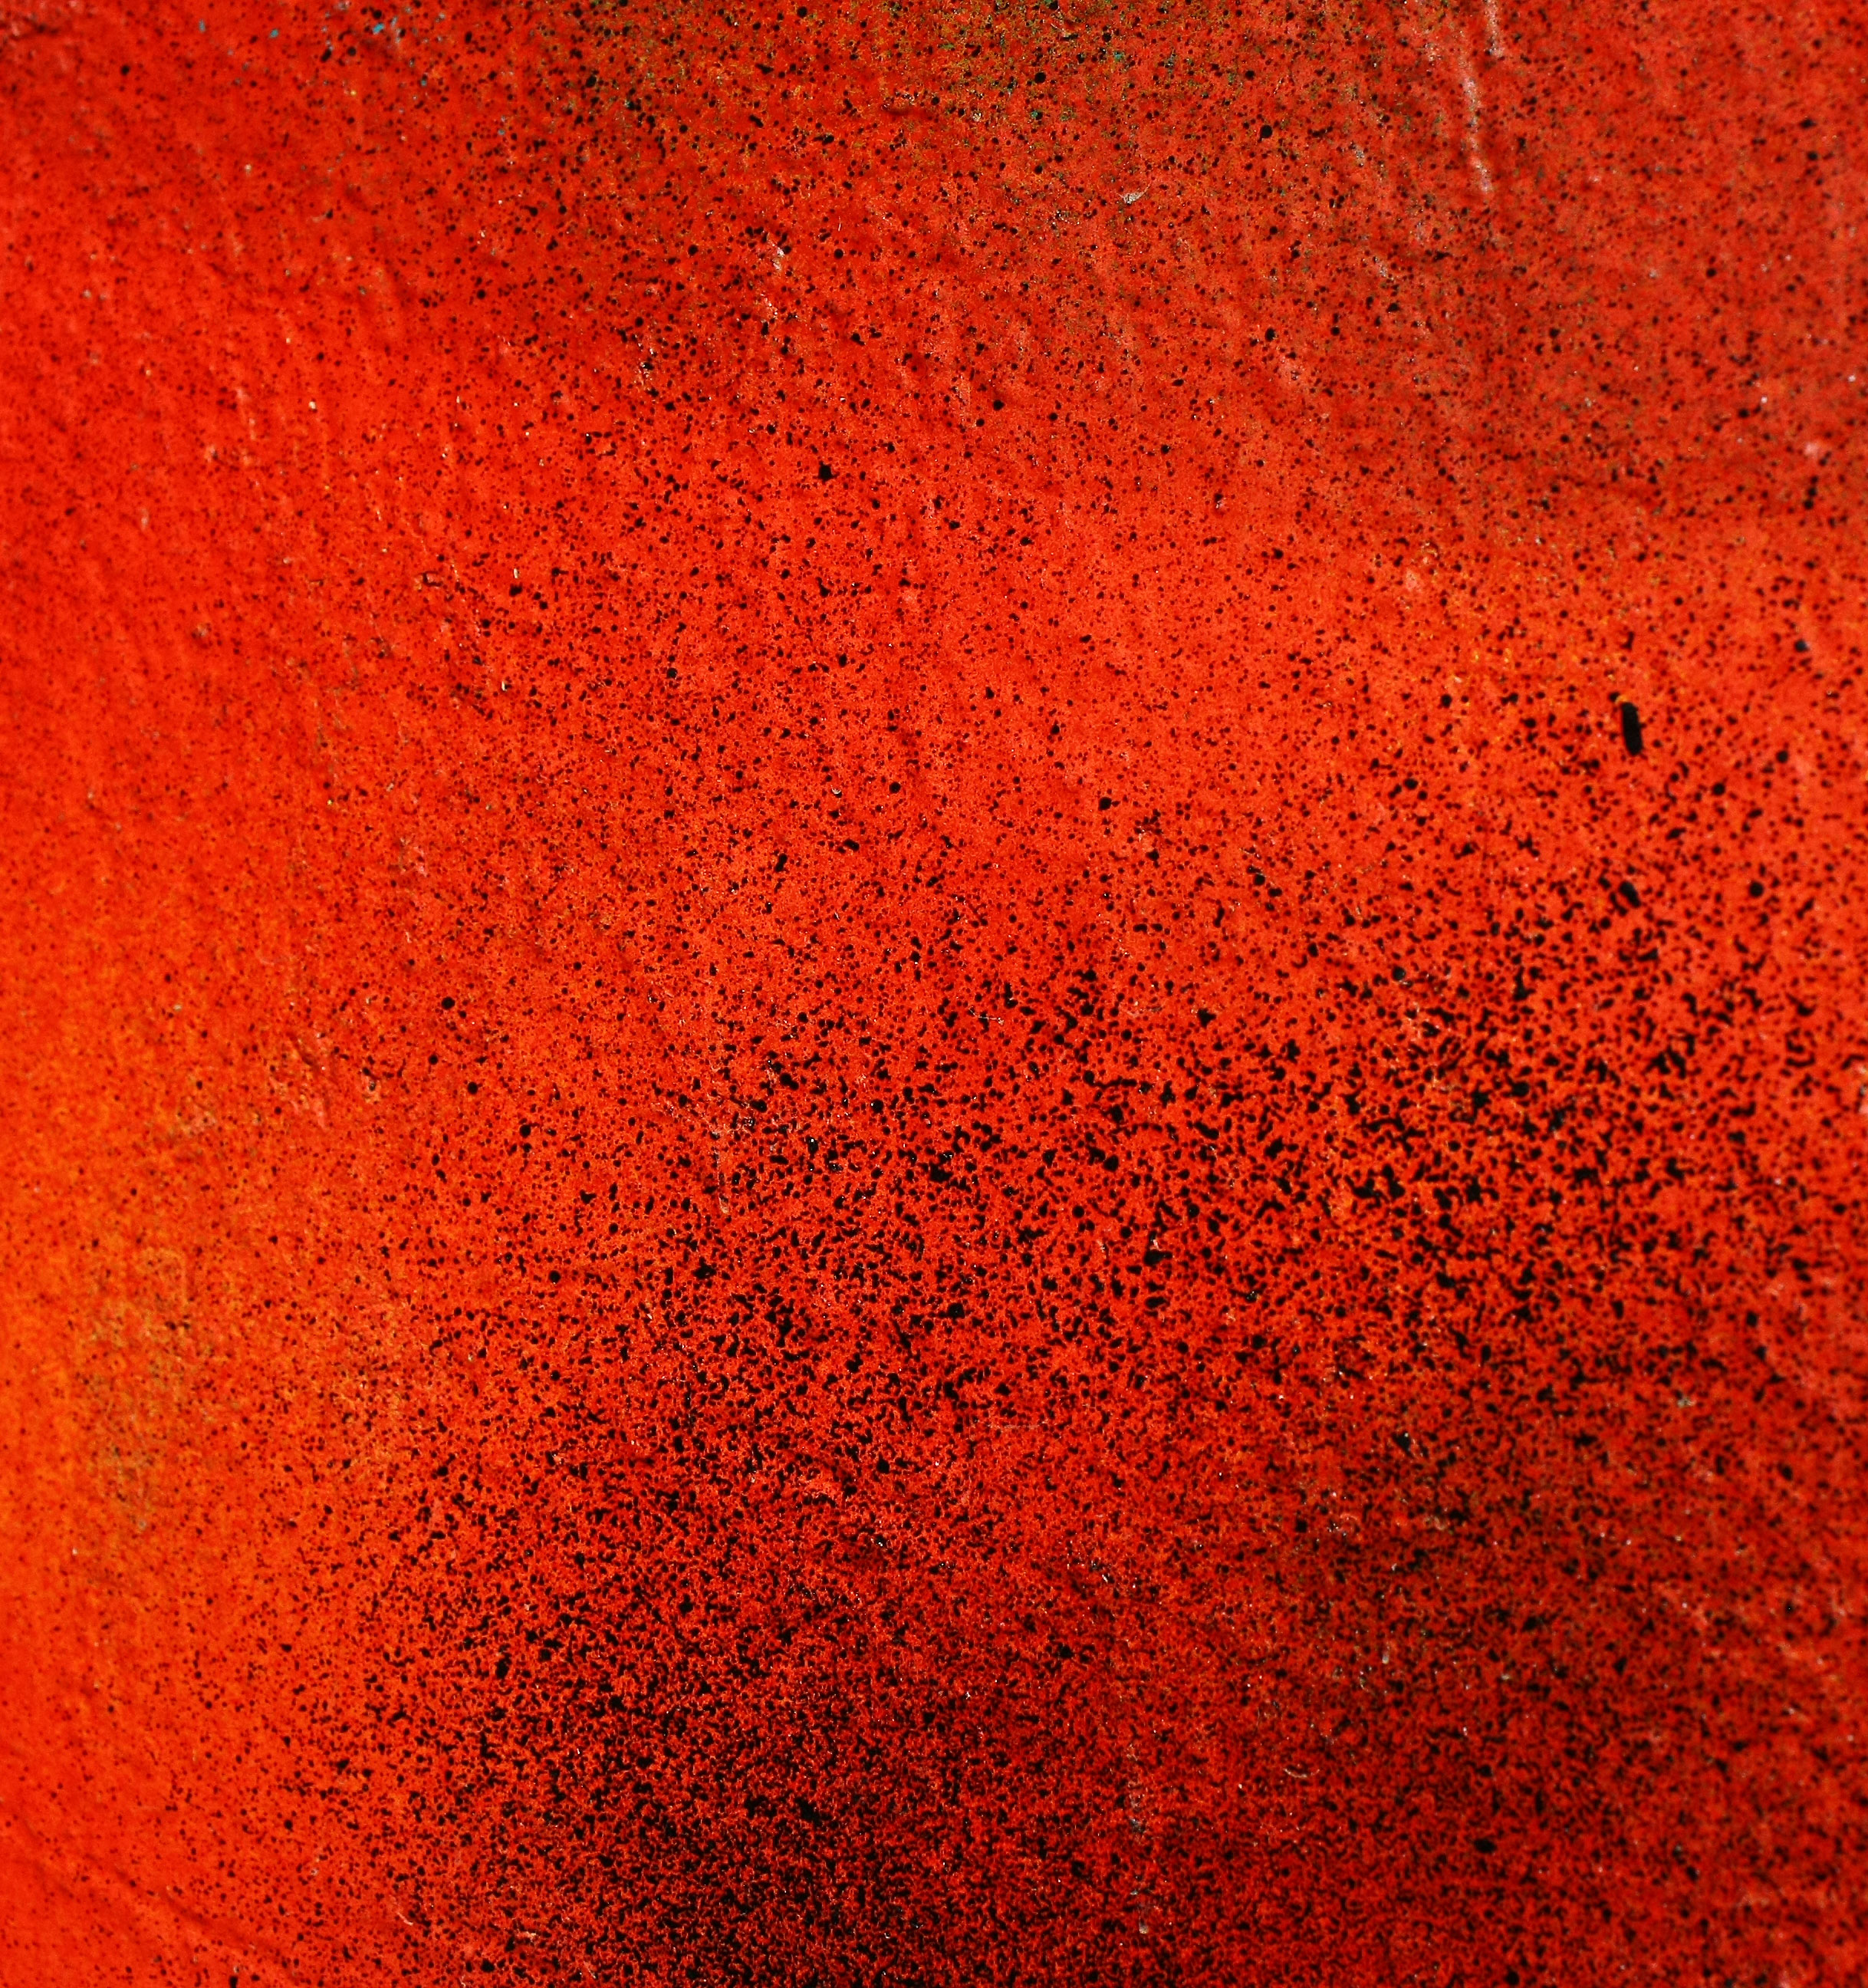 Acrylic Paint Texture High Resolution